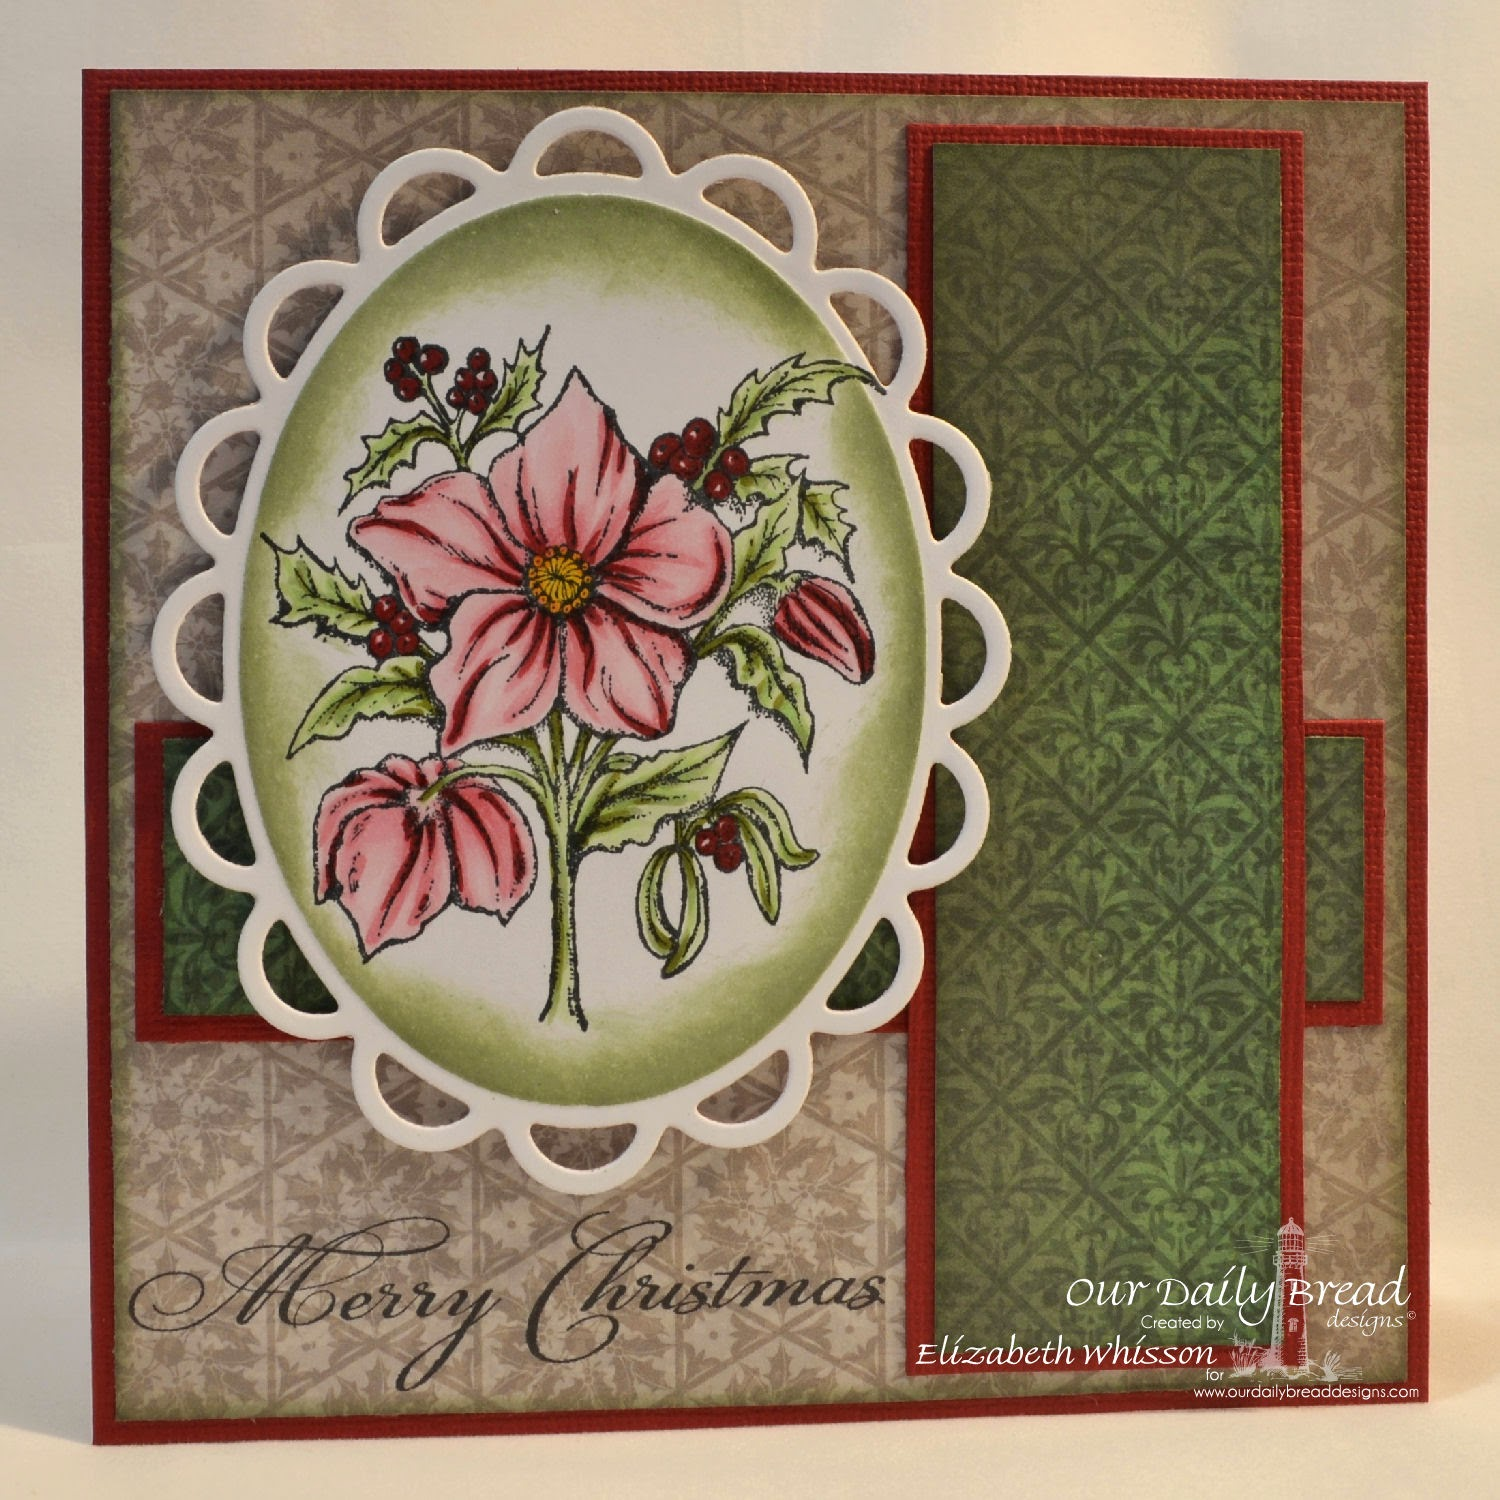 Our Daily Bread Designs, Christmas Rose, Christmas Verses, Christmas Paper Collection 2013, designed by Elizabeth Whisson